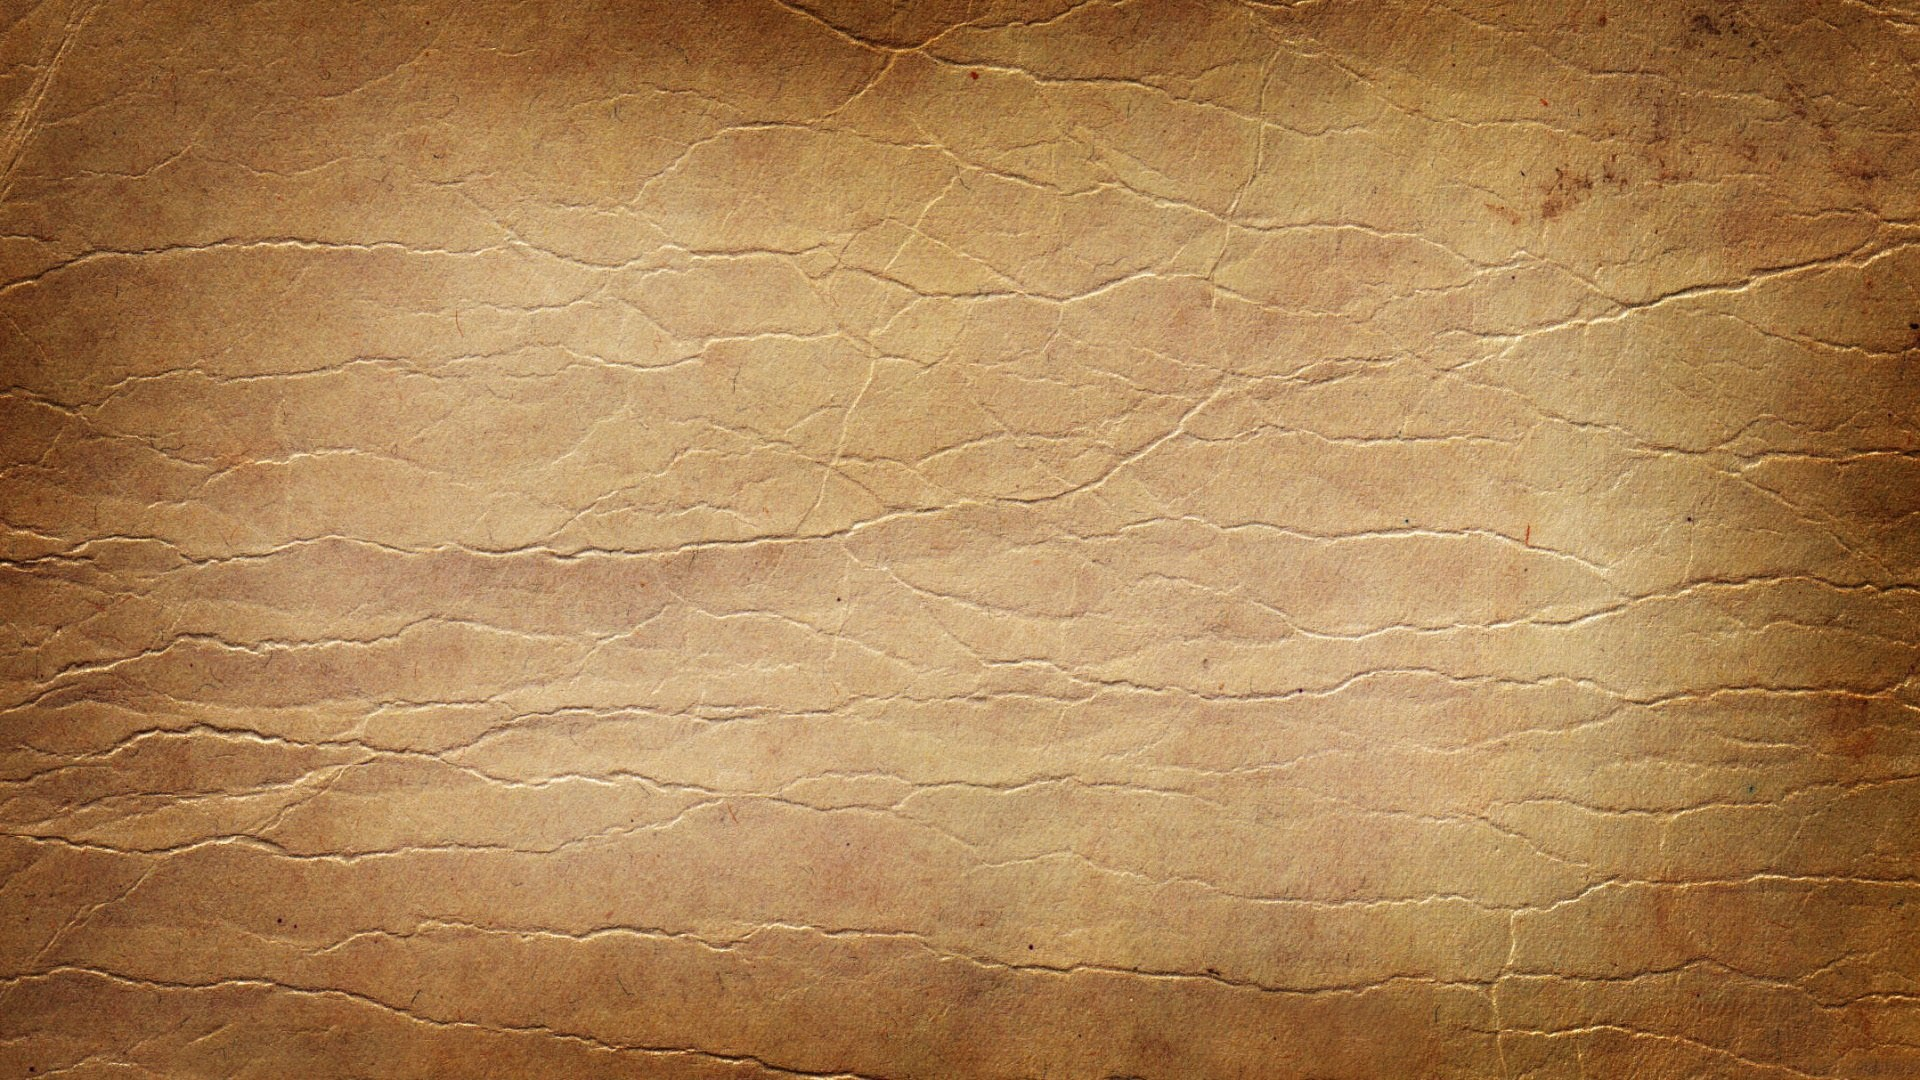 papyrus background  u00b7 u2460 download free beautiful high